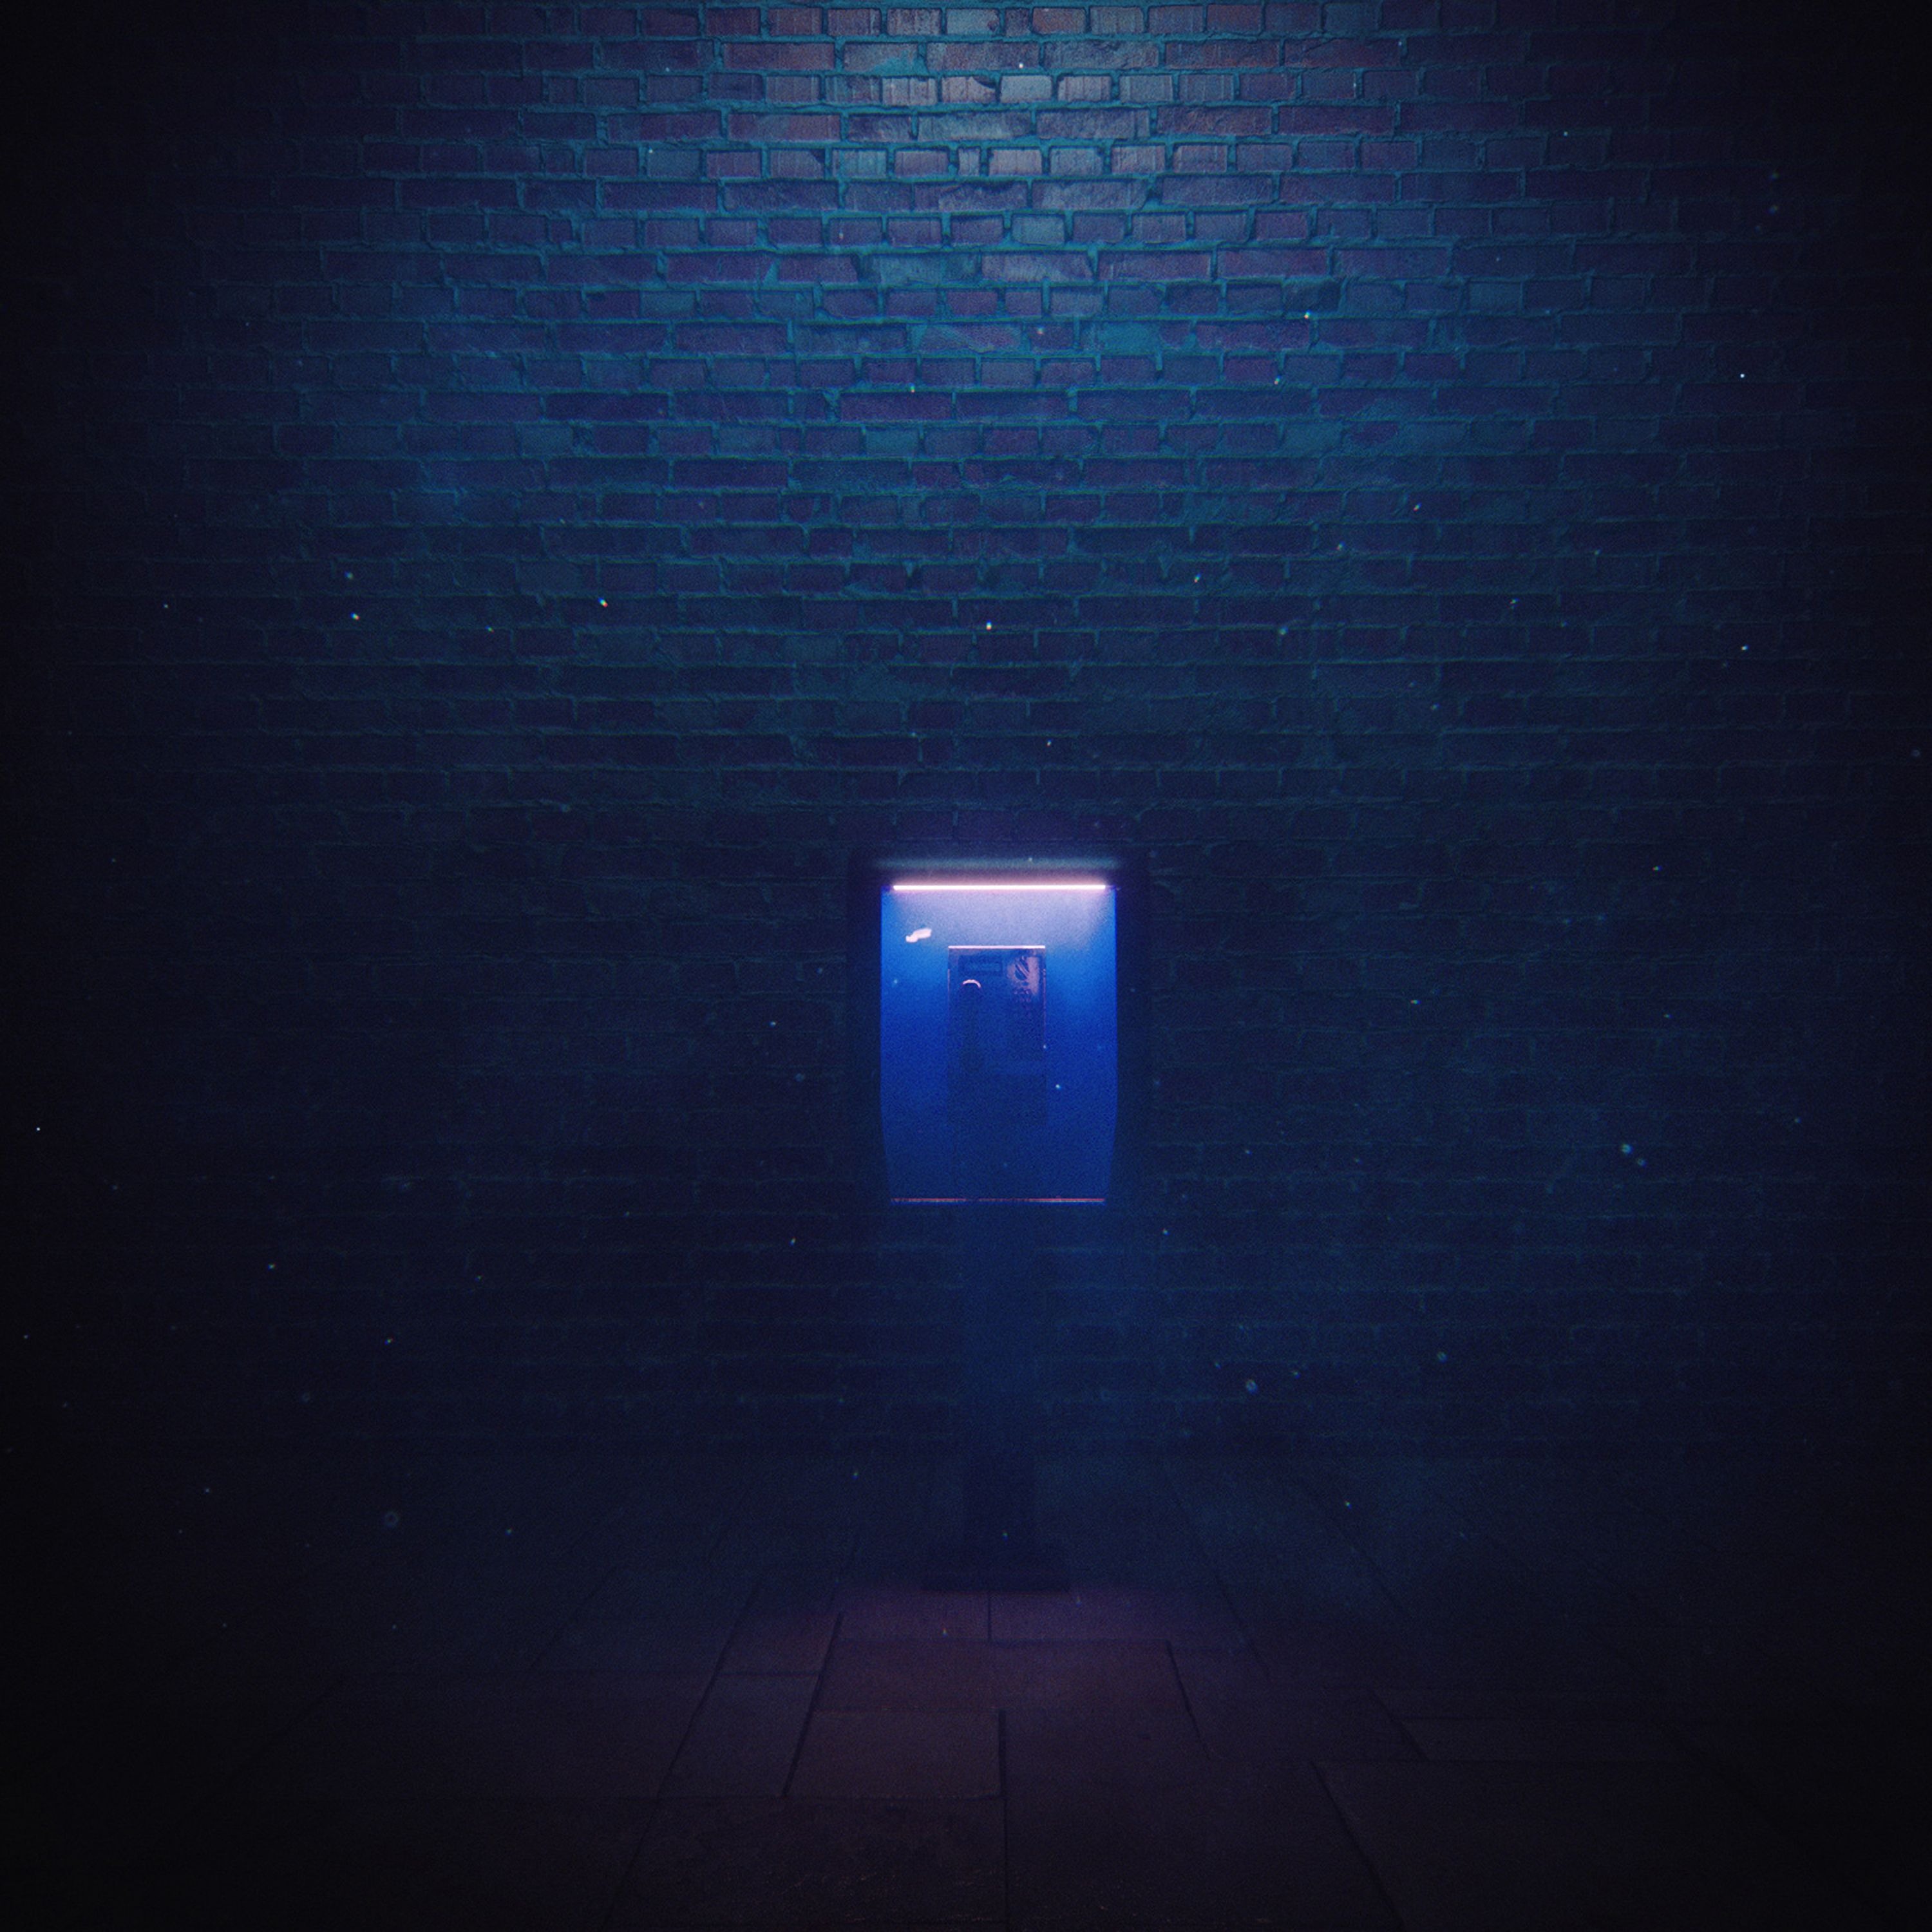 100669 download wallpaper Night, Dark, Miscellanea, Miscellaneous, Wall, Backlight, Illumination, Darkly, Telephone, Emptiness, Void screensavers and pictures for free